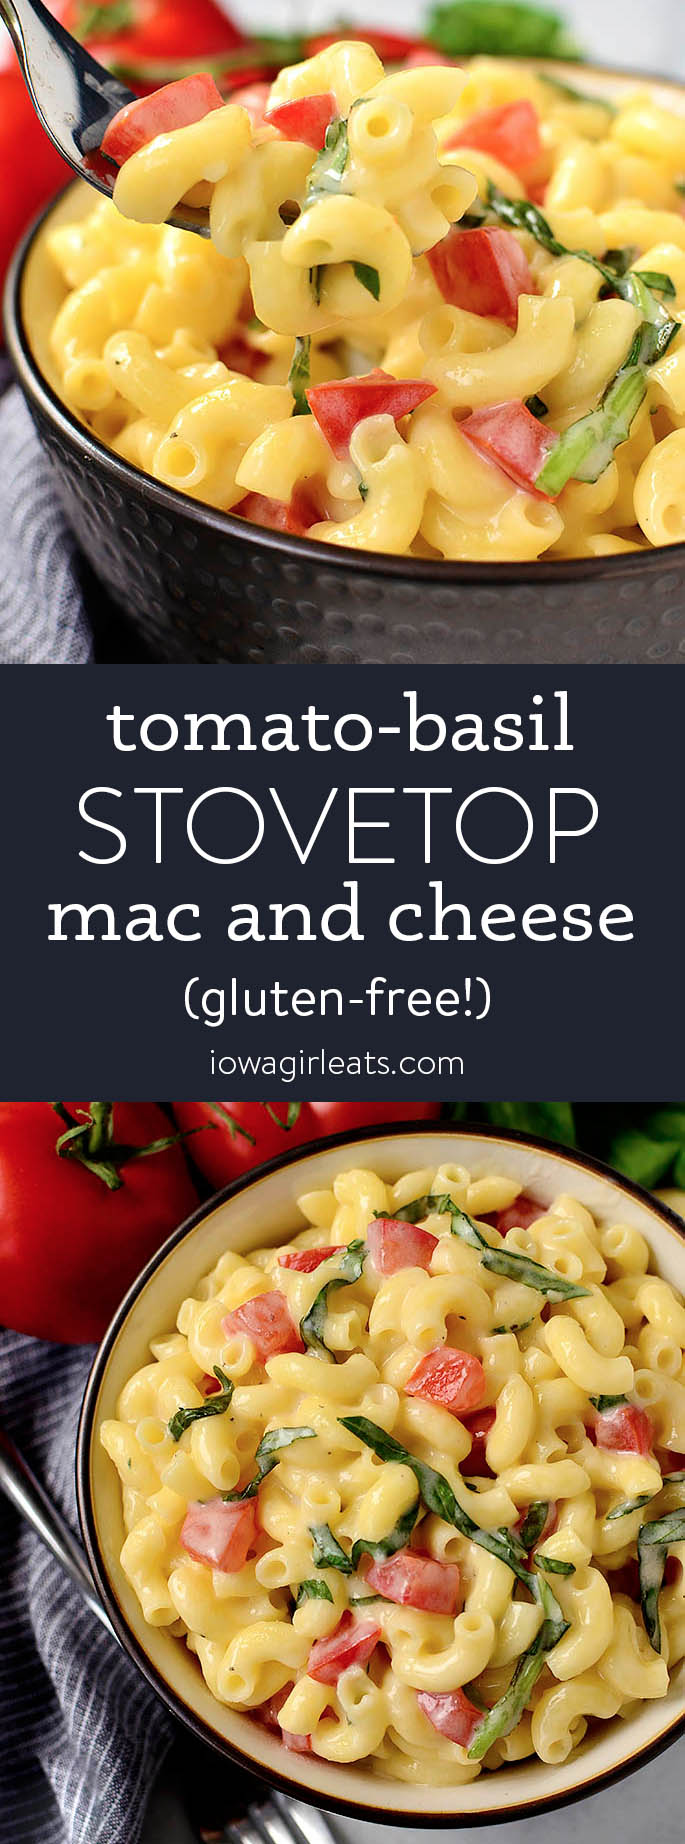 Photo collage of stovetop tomato basil mac and cheese